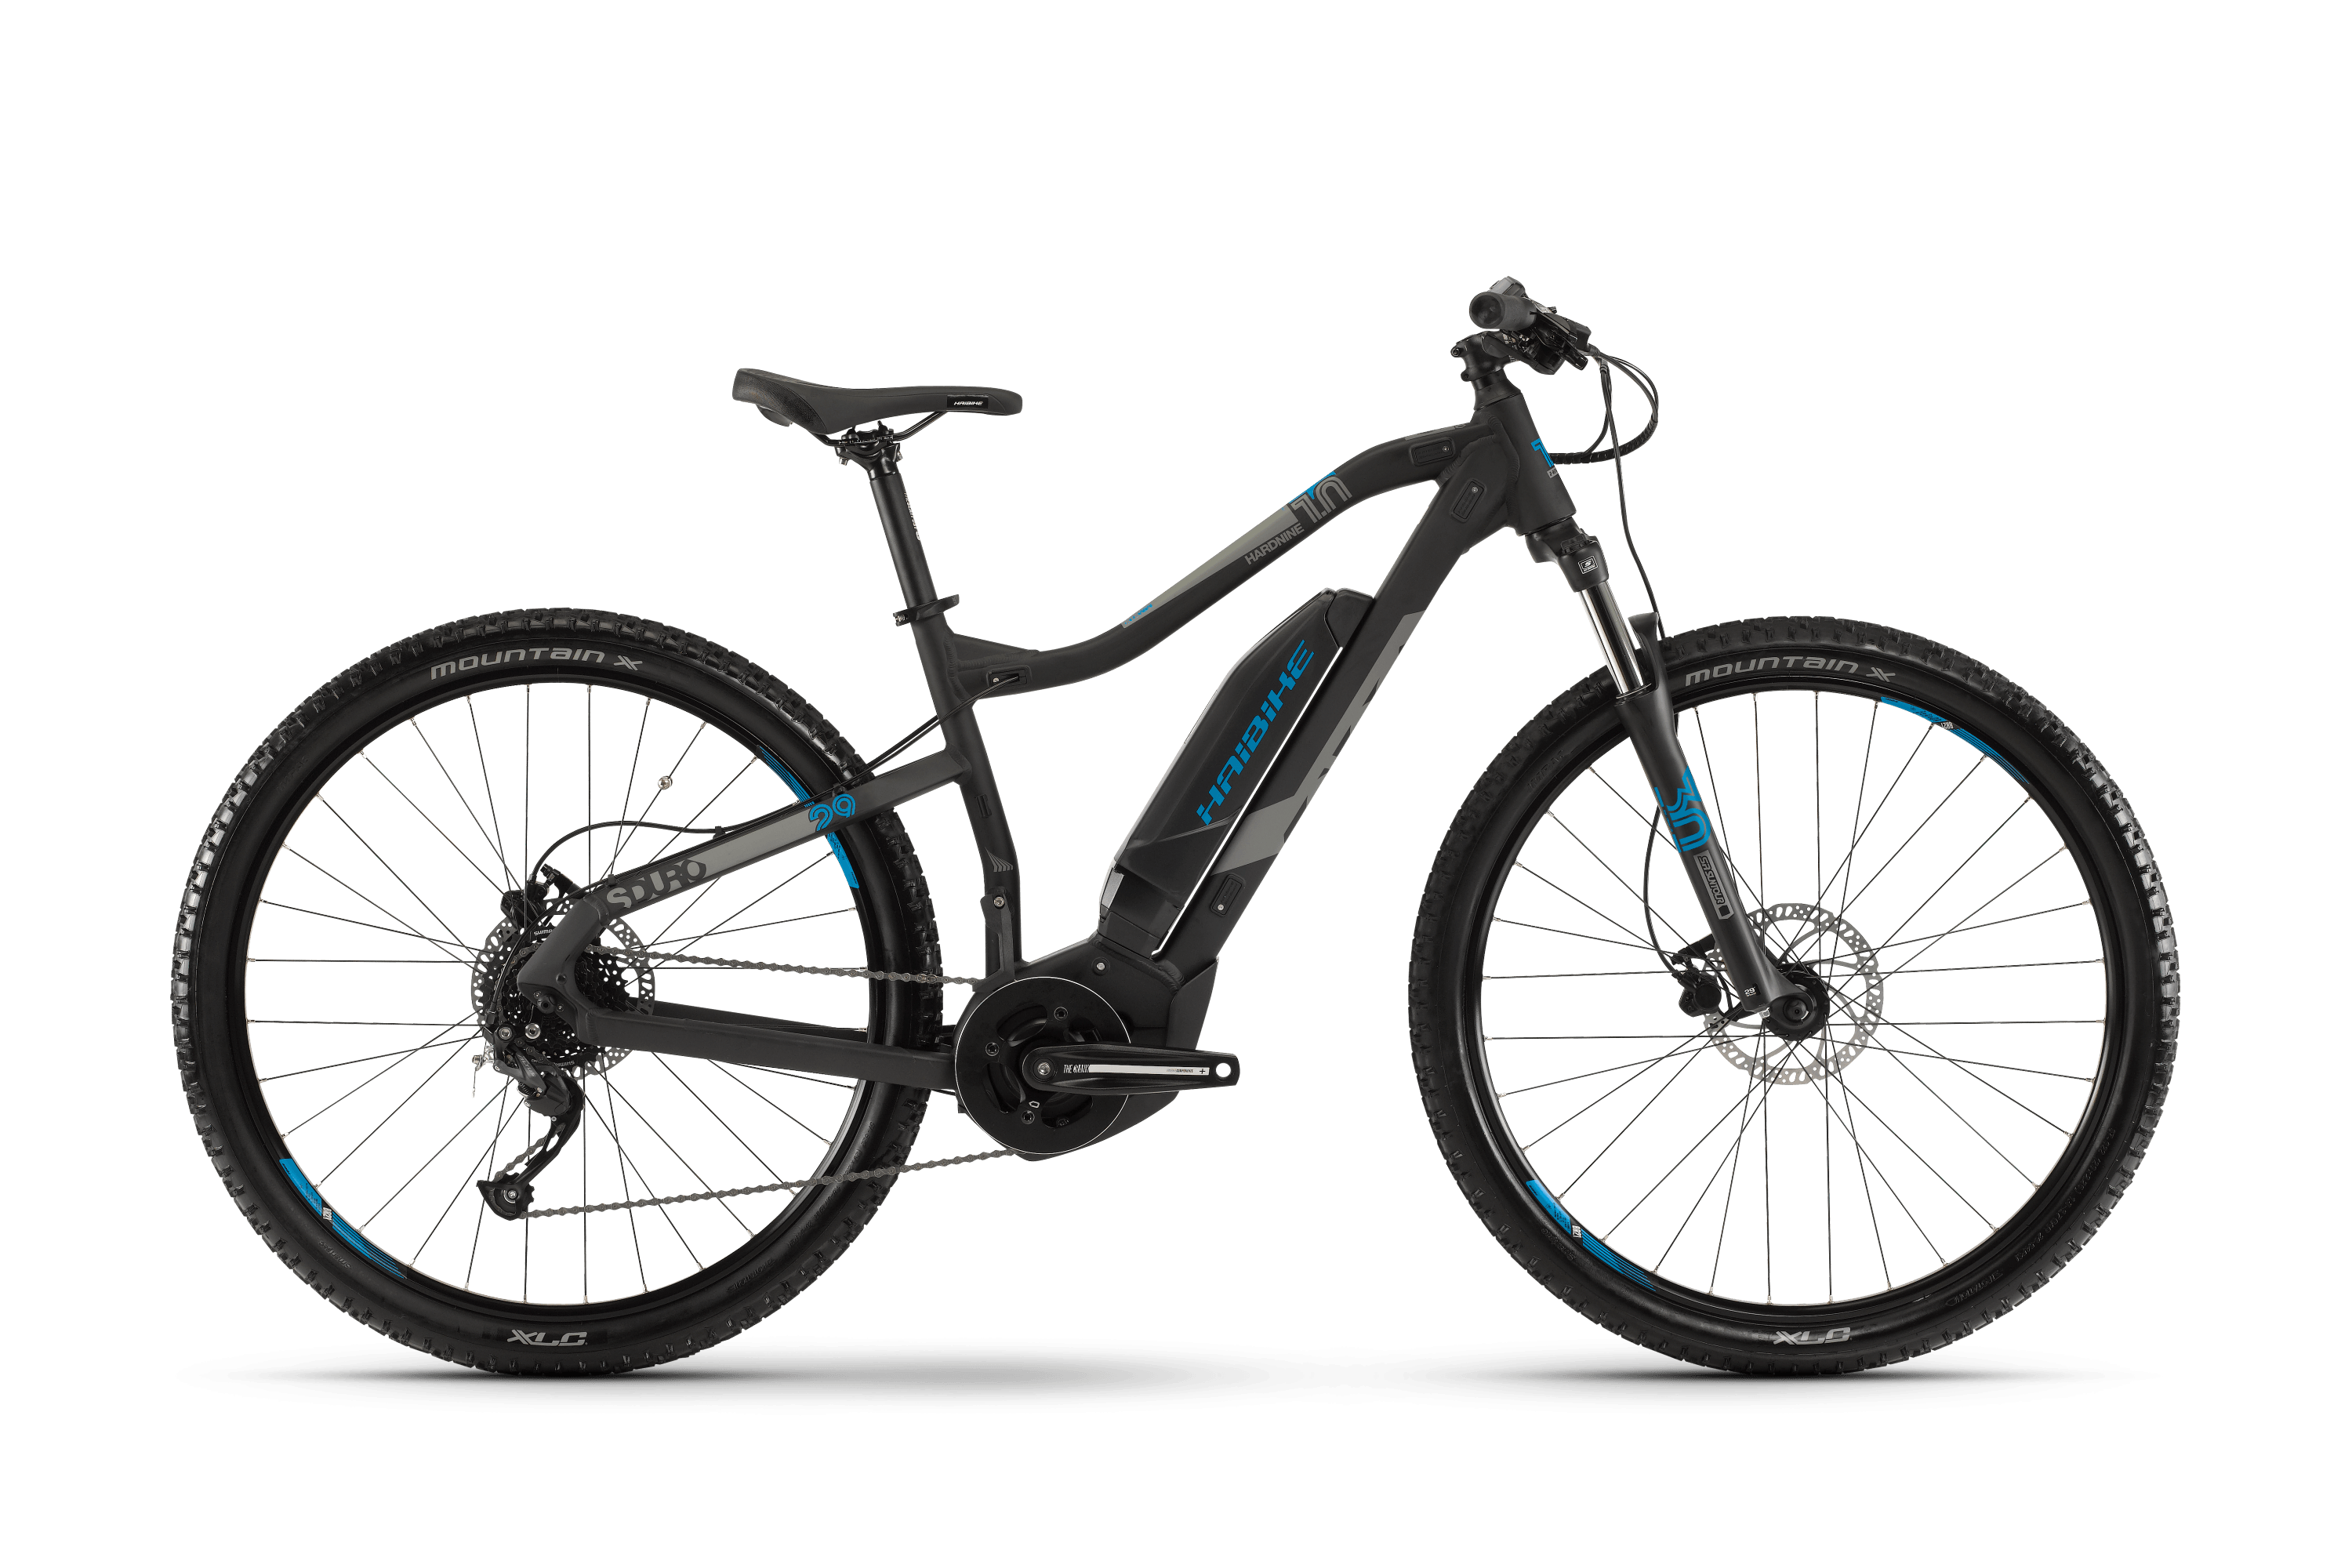 https://w8w5m3f8.stackpathcdn.com/11996-thickbox_extralarge/vtt-electrique-haibike-sduro-hardnine-10.jpg